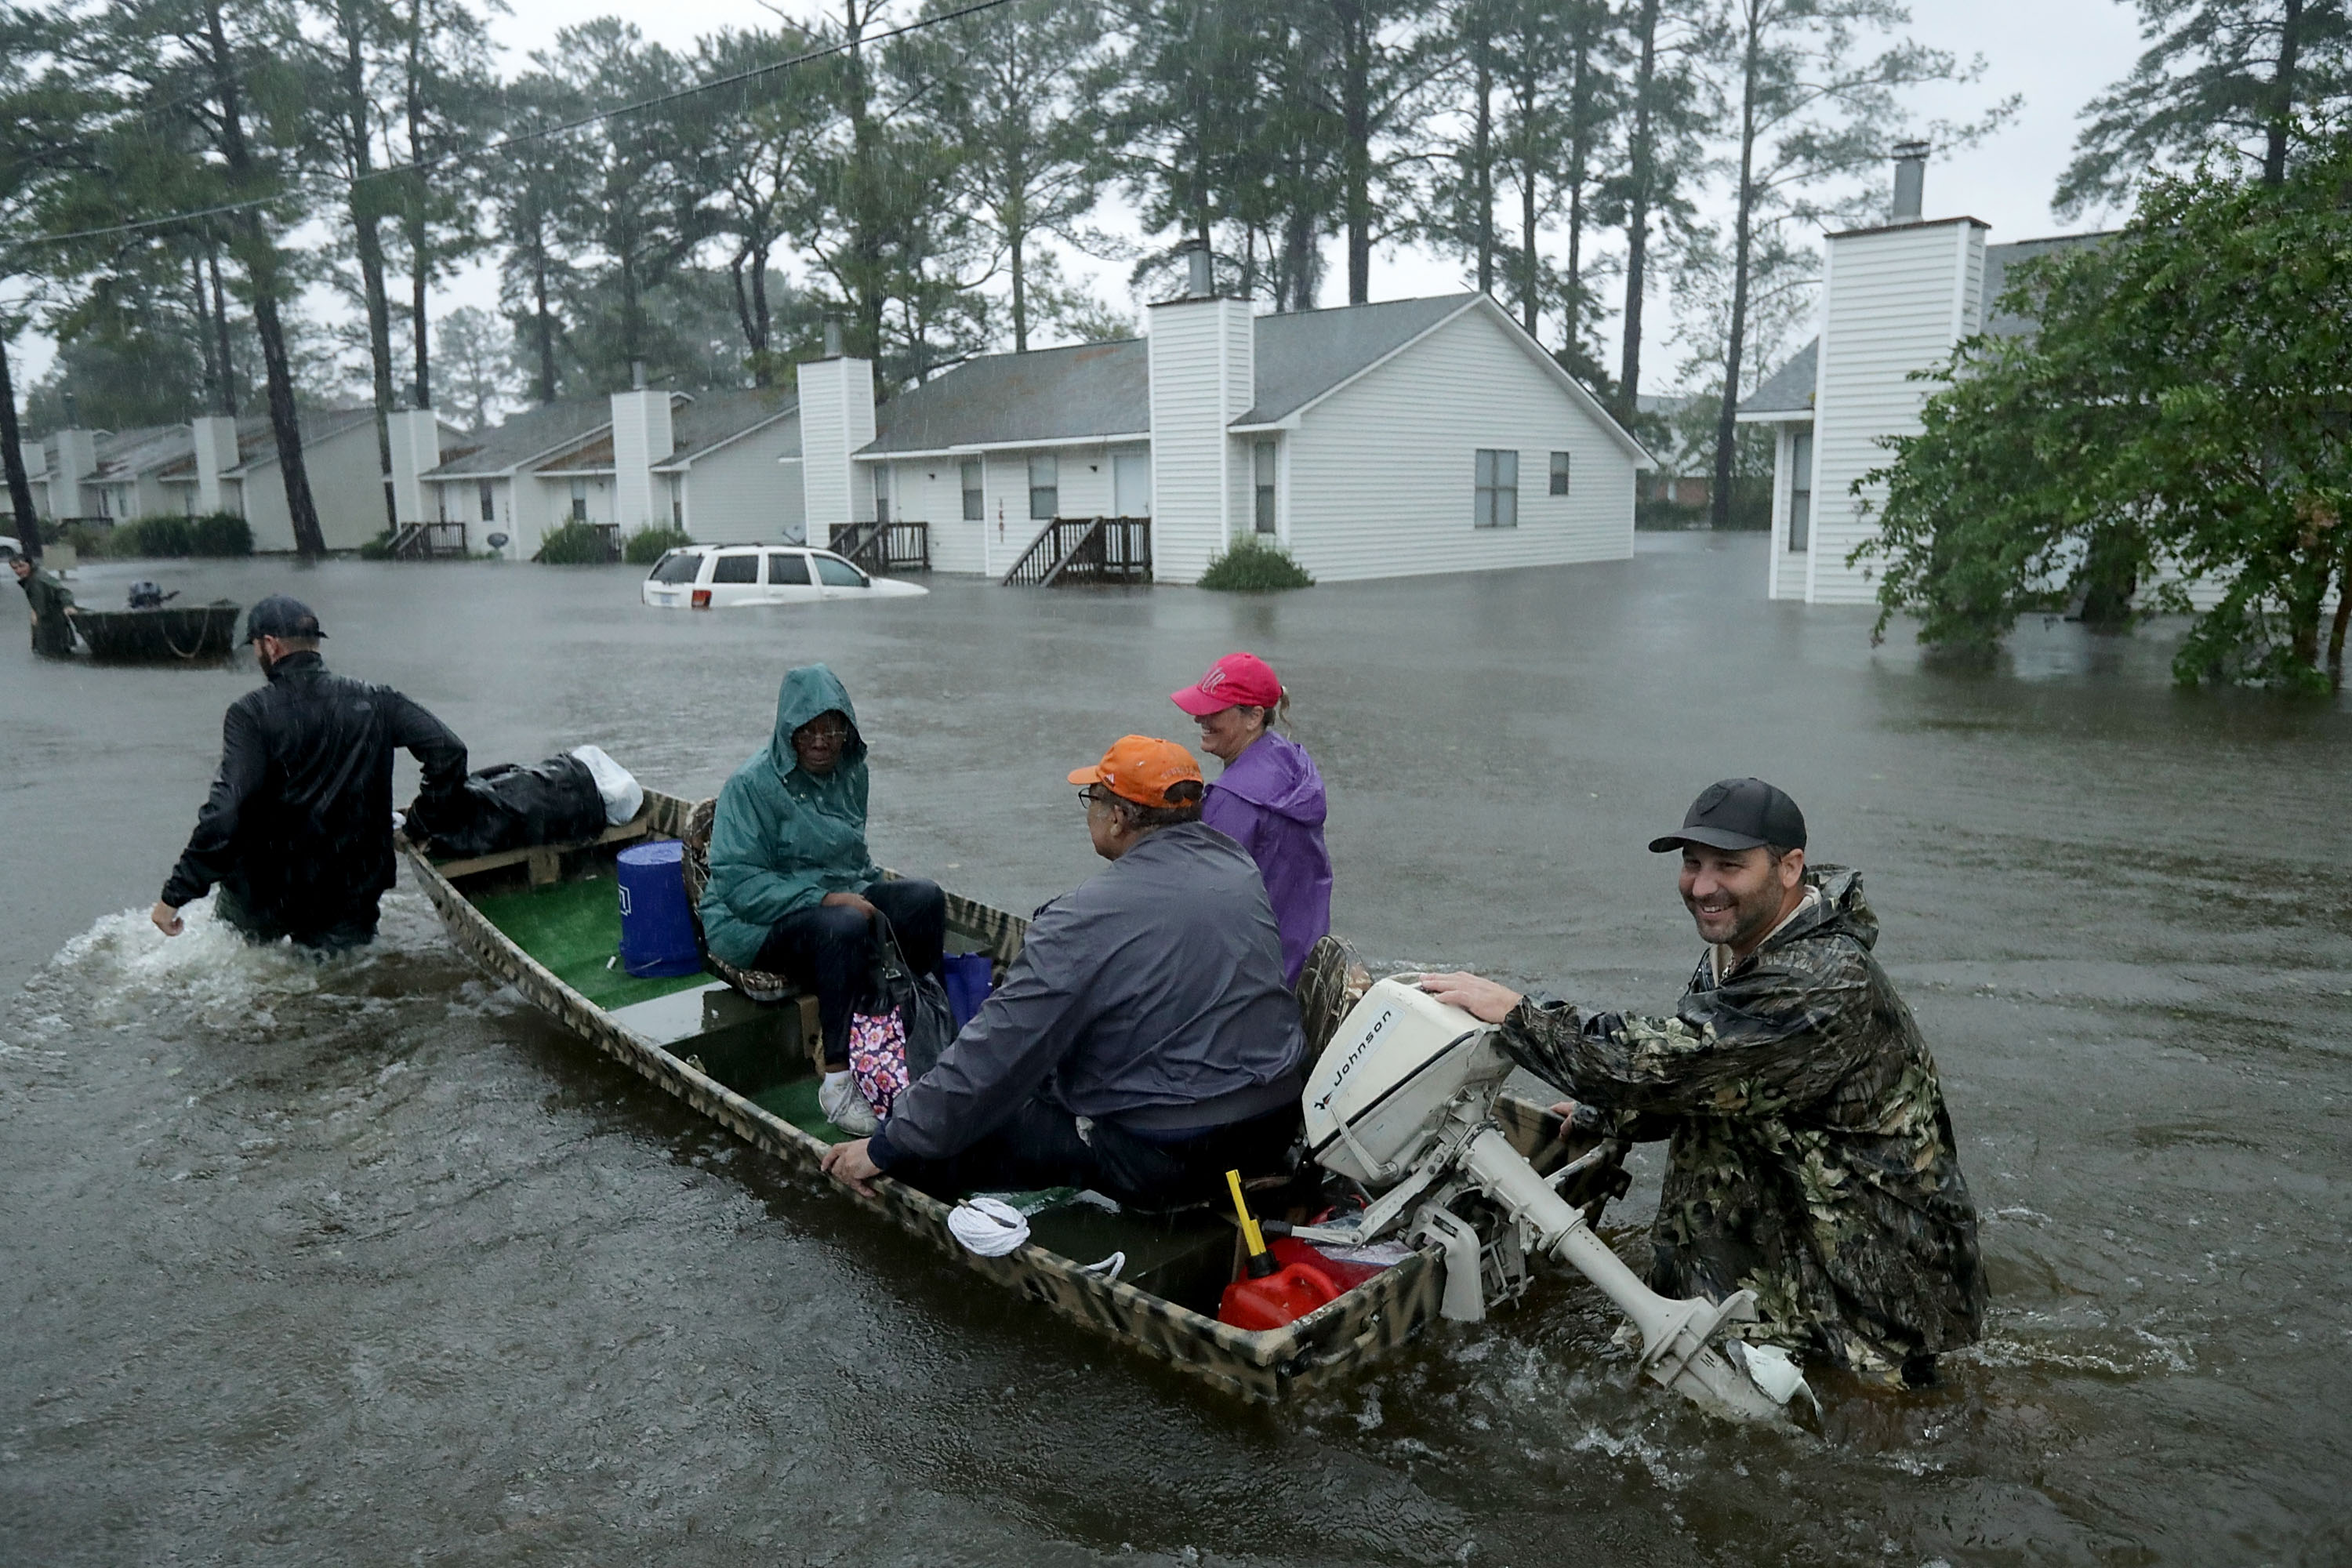 Volunteers from all over North Carolina help rescue residents and their pets from their flooded homes during Hurricane Florence September 14, 2018 in New Bern, North Carolina. Hurricane Florence made landfall in North Carolina as a Category 1 storm and flooding from the heavy rain is forcing hundreds of people to call for emergency rescues in the area around New Bern, North Carolina, which sits at the confluence of the Nuese and Trent rivers.